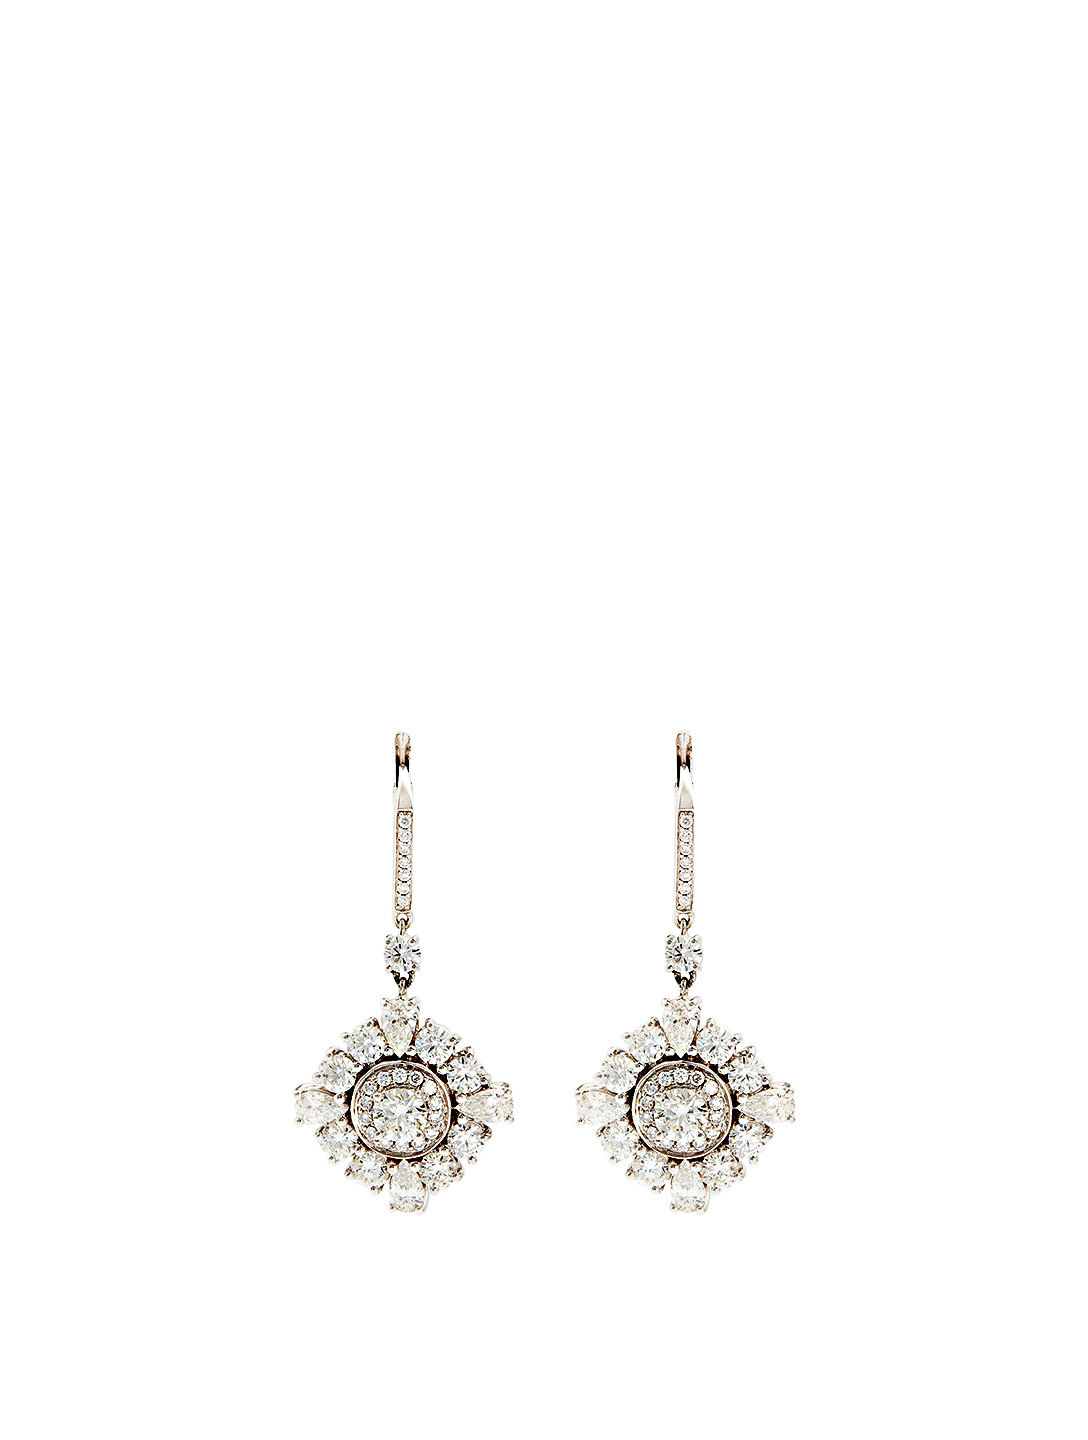 MARIA CANALE Essentials 18K White Gold Princess Drop Earrings With Diamonds Women's Metallic